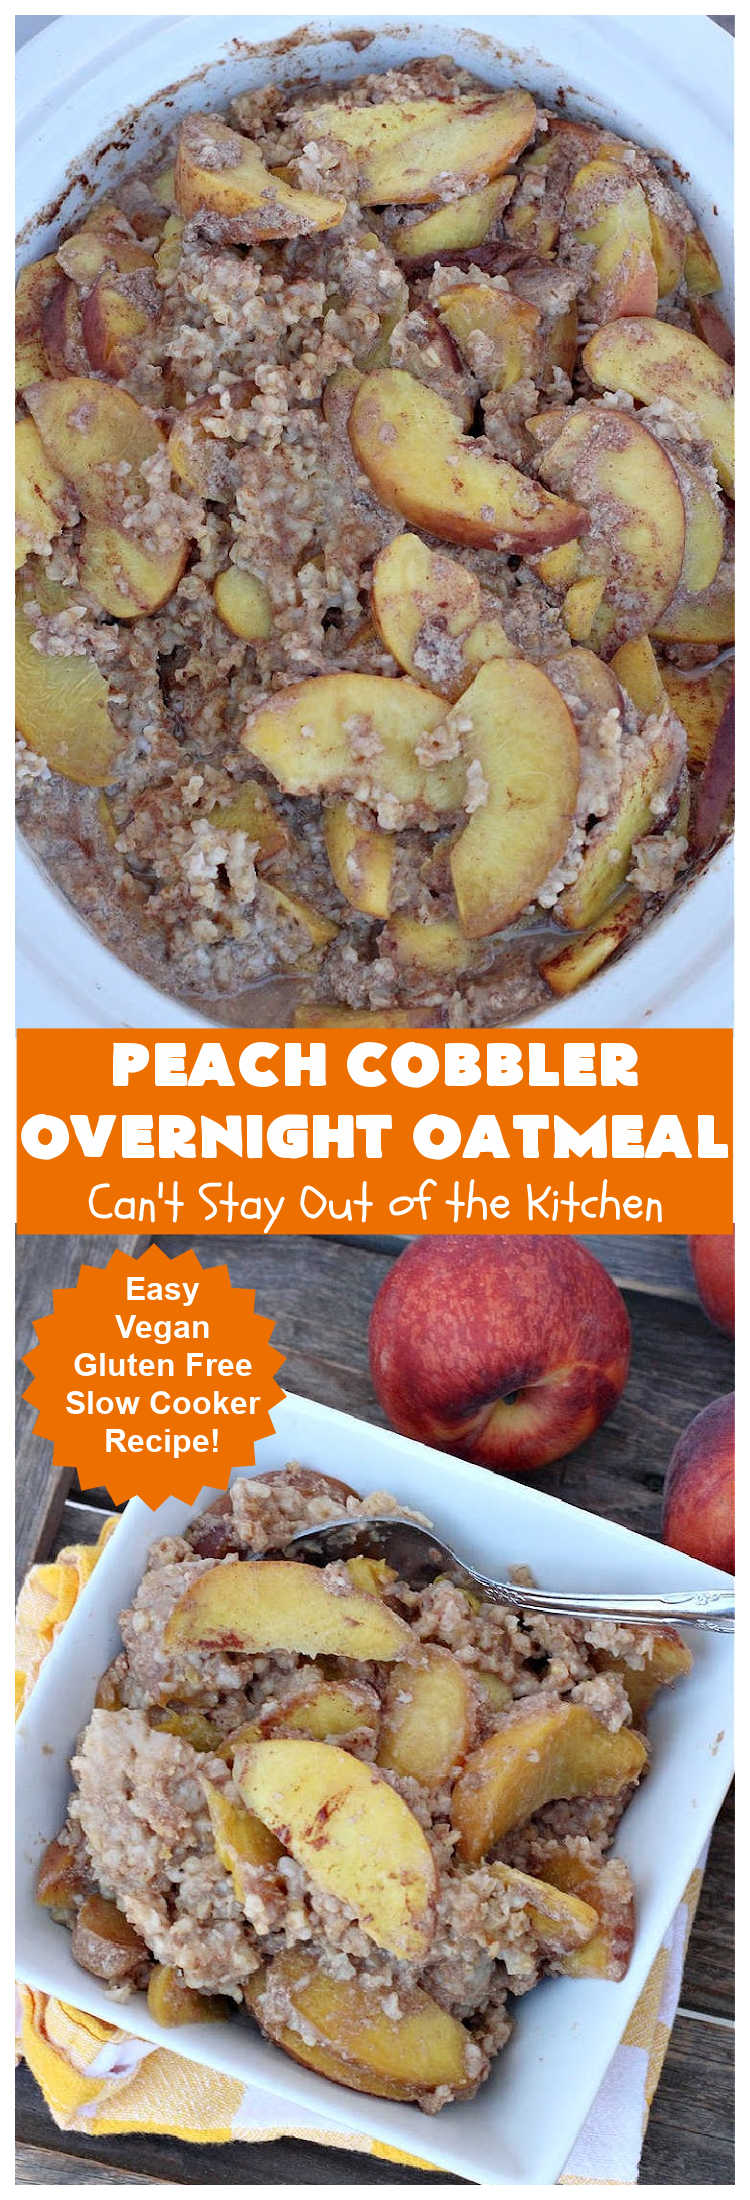 Peach Cobbler Overnight Oatmeal | Can't Stay Out of the Kitchen | this fantastic #oatmeal #recipe cooks in the #SlowCooker overnight. So easy & terrific for a company or #holiday #breakfast. Fresh, canned or frozen #peaches can be used. #vegan #GlutenFree #crockpot #OatMilk #SteelCutOats #OvernightOatmeal #PeachCobbler #PeachCobblerOvernightOatmeal